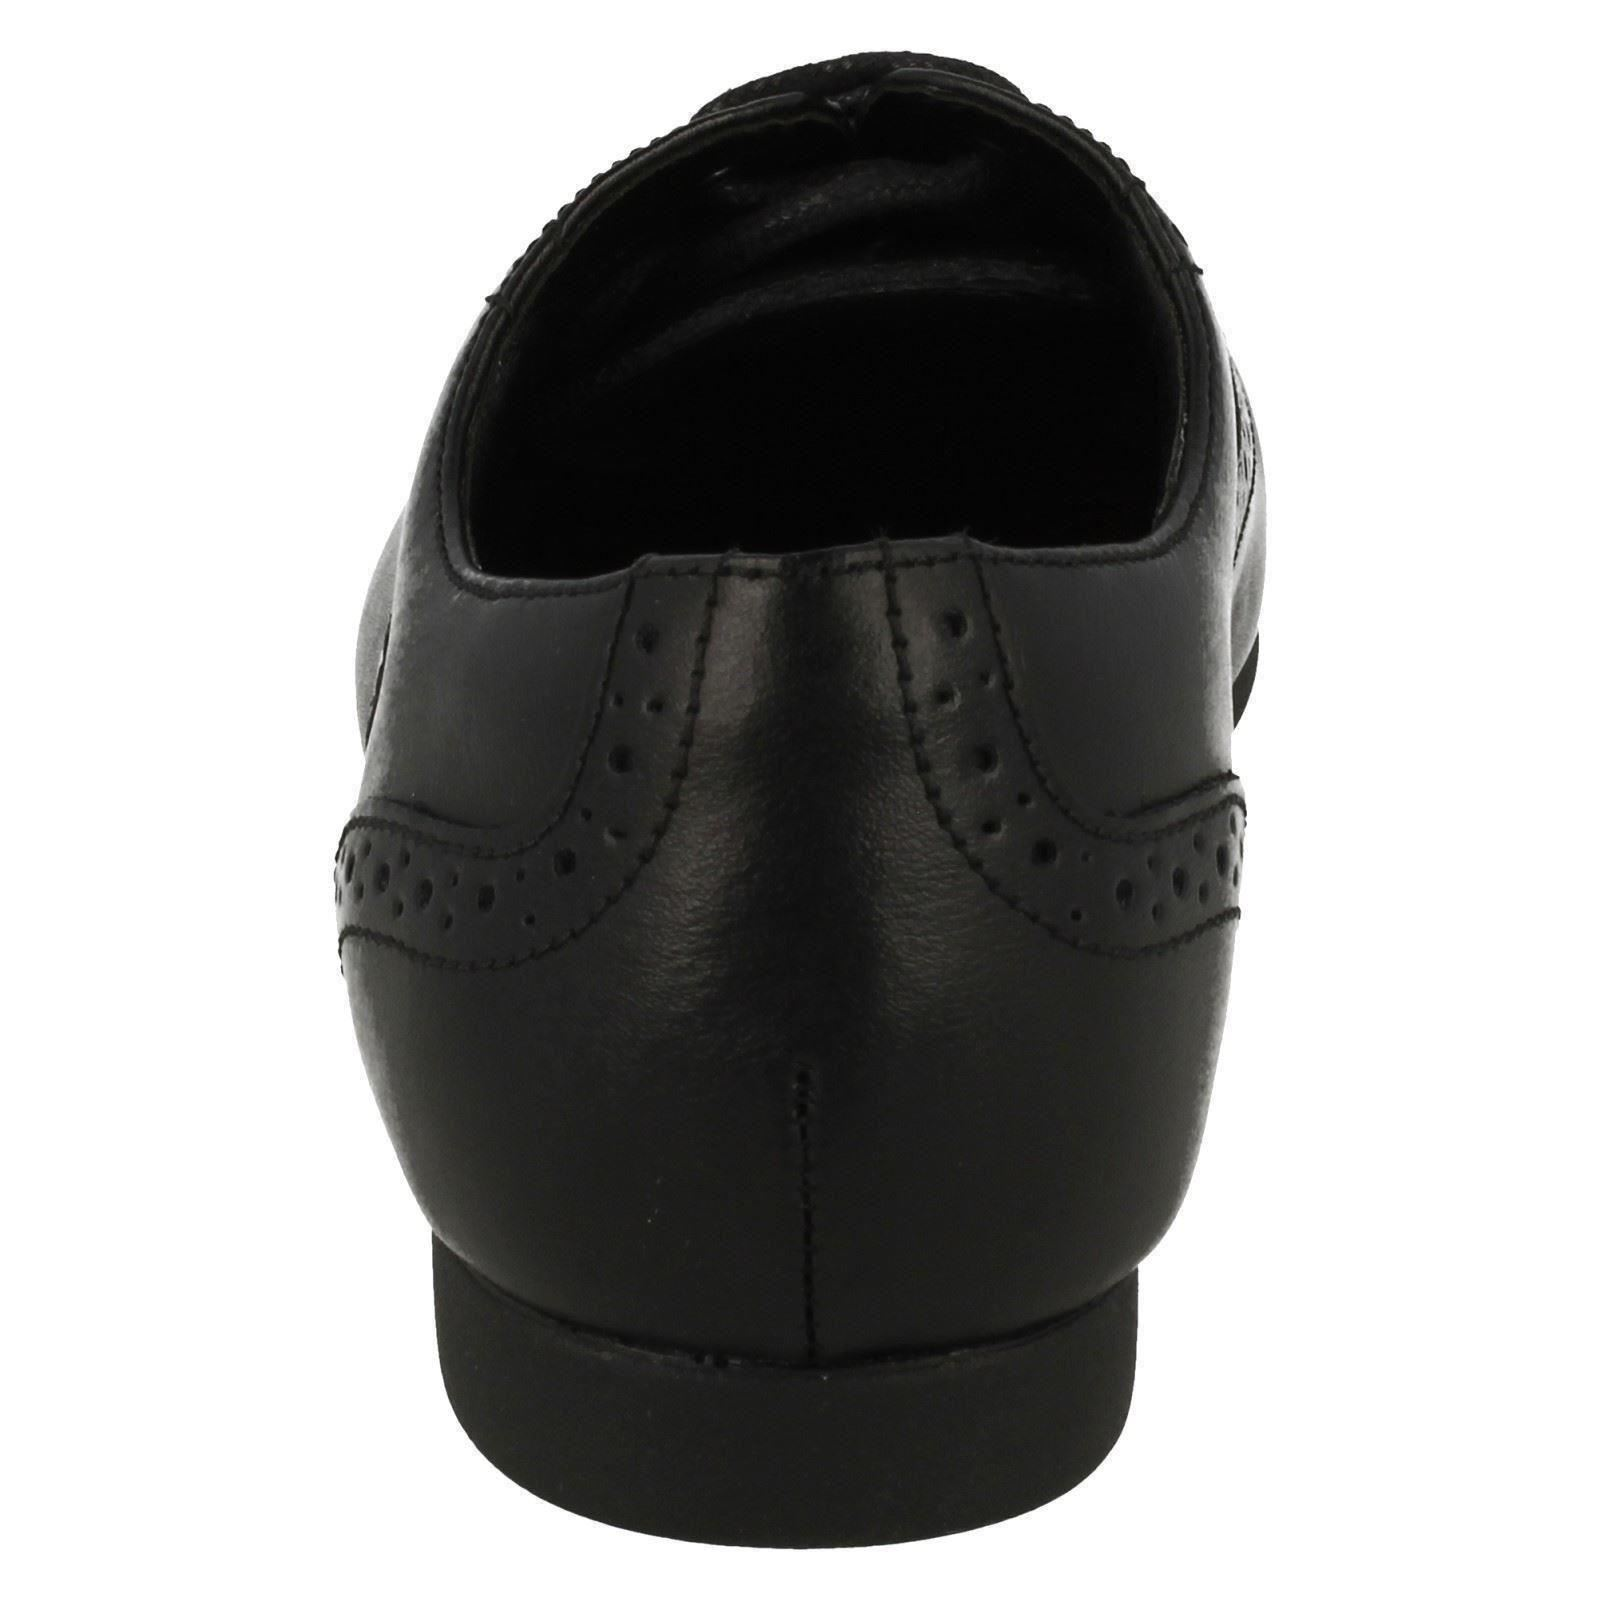 Girls Clarks Brogue Style Lace Up Patent//Leather School Shoes Selsey Cool